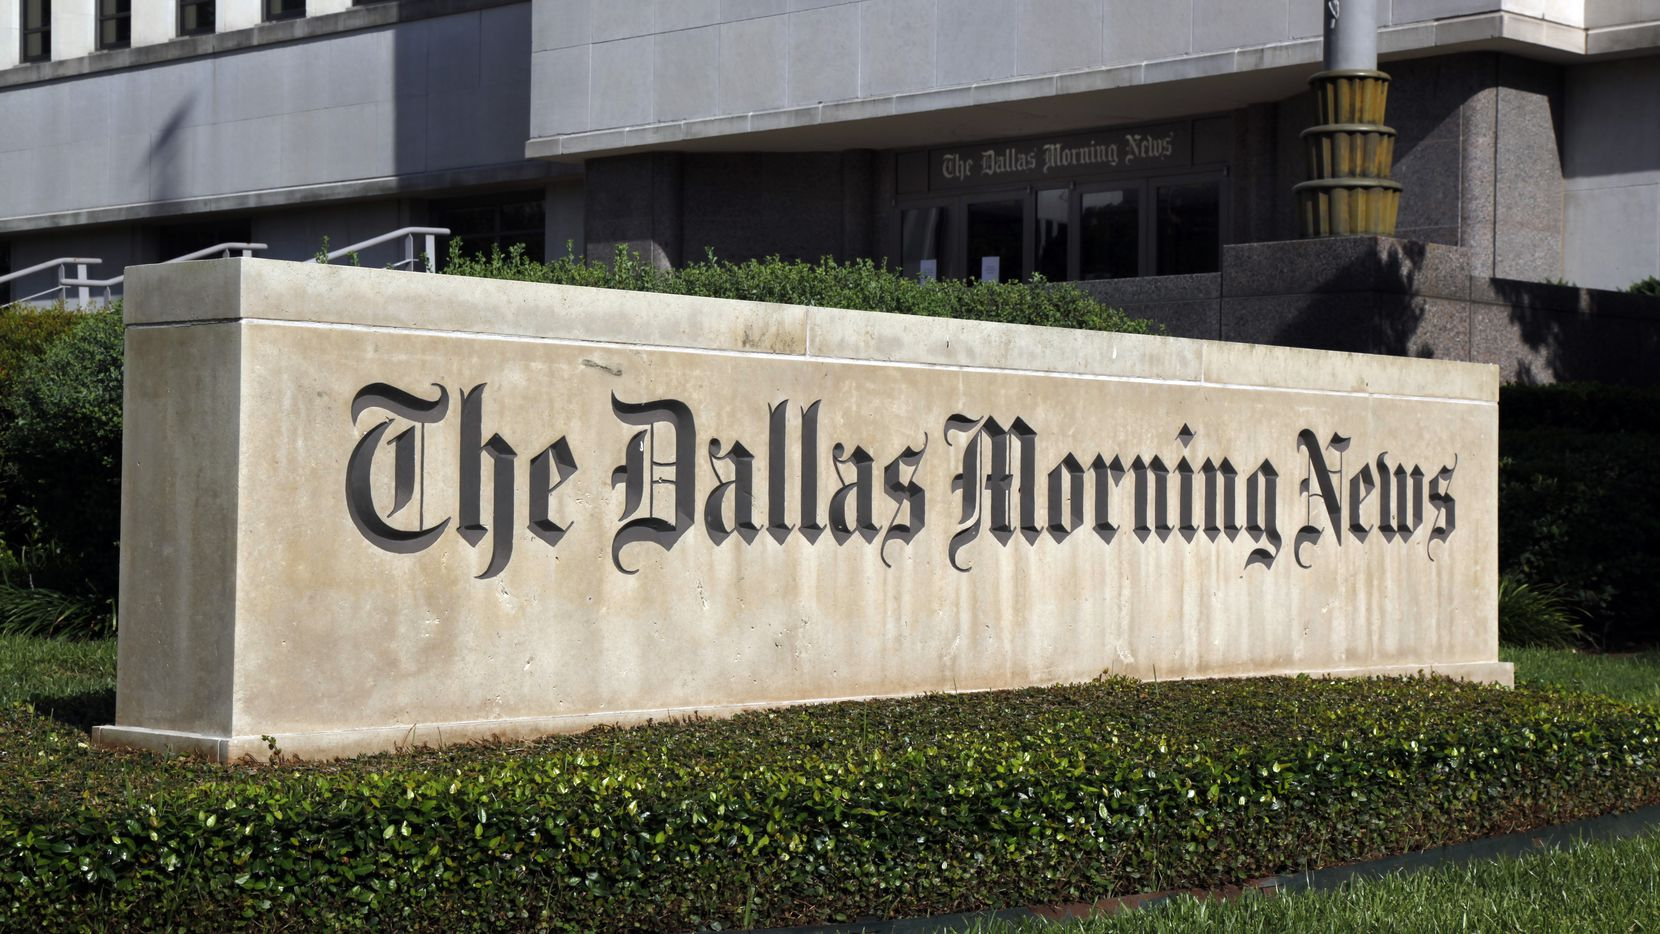 The Dallas Morning News shot on July 23, 2010.